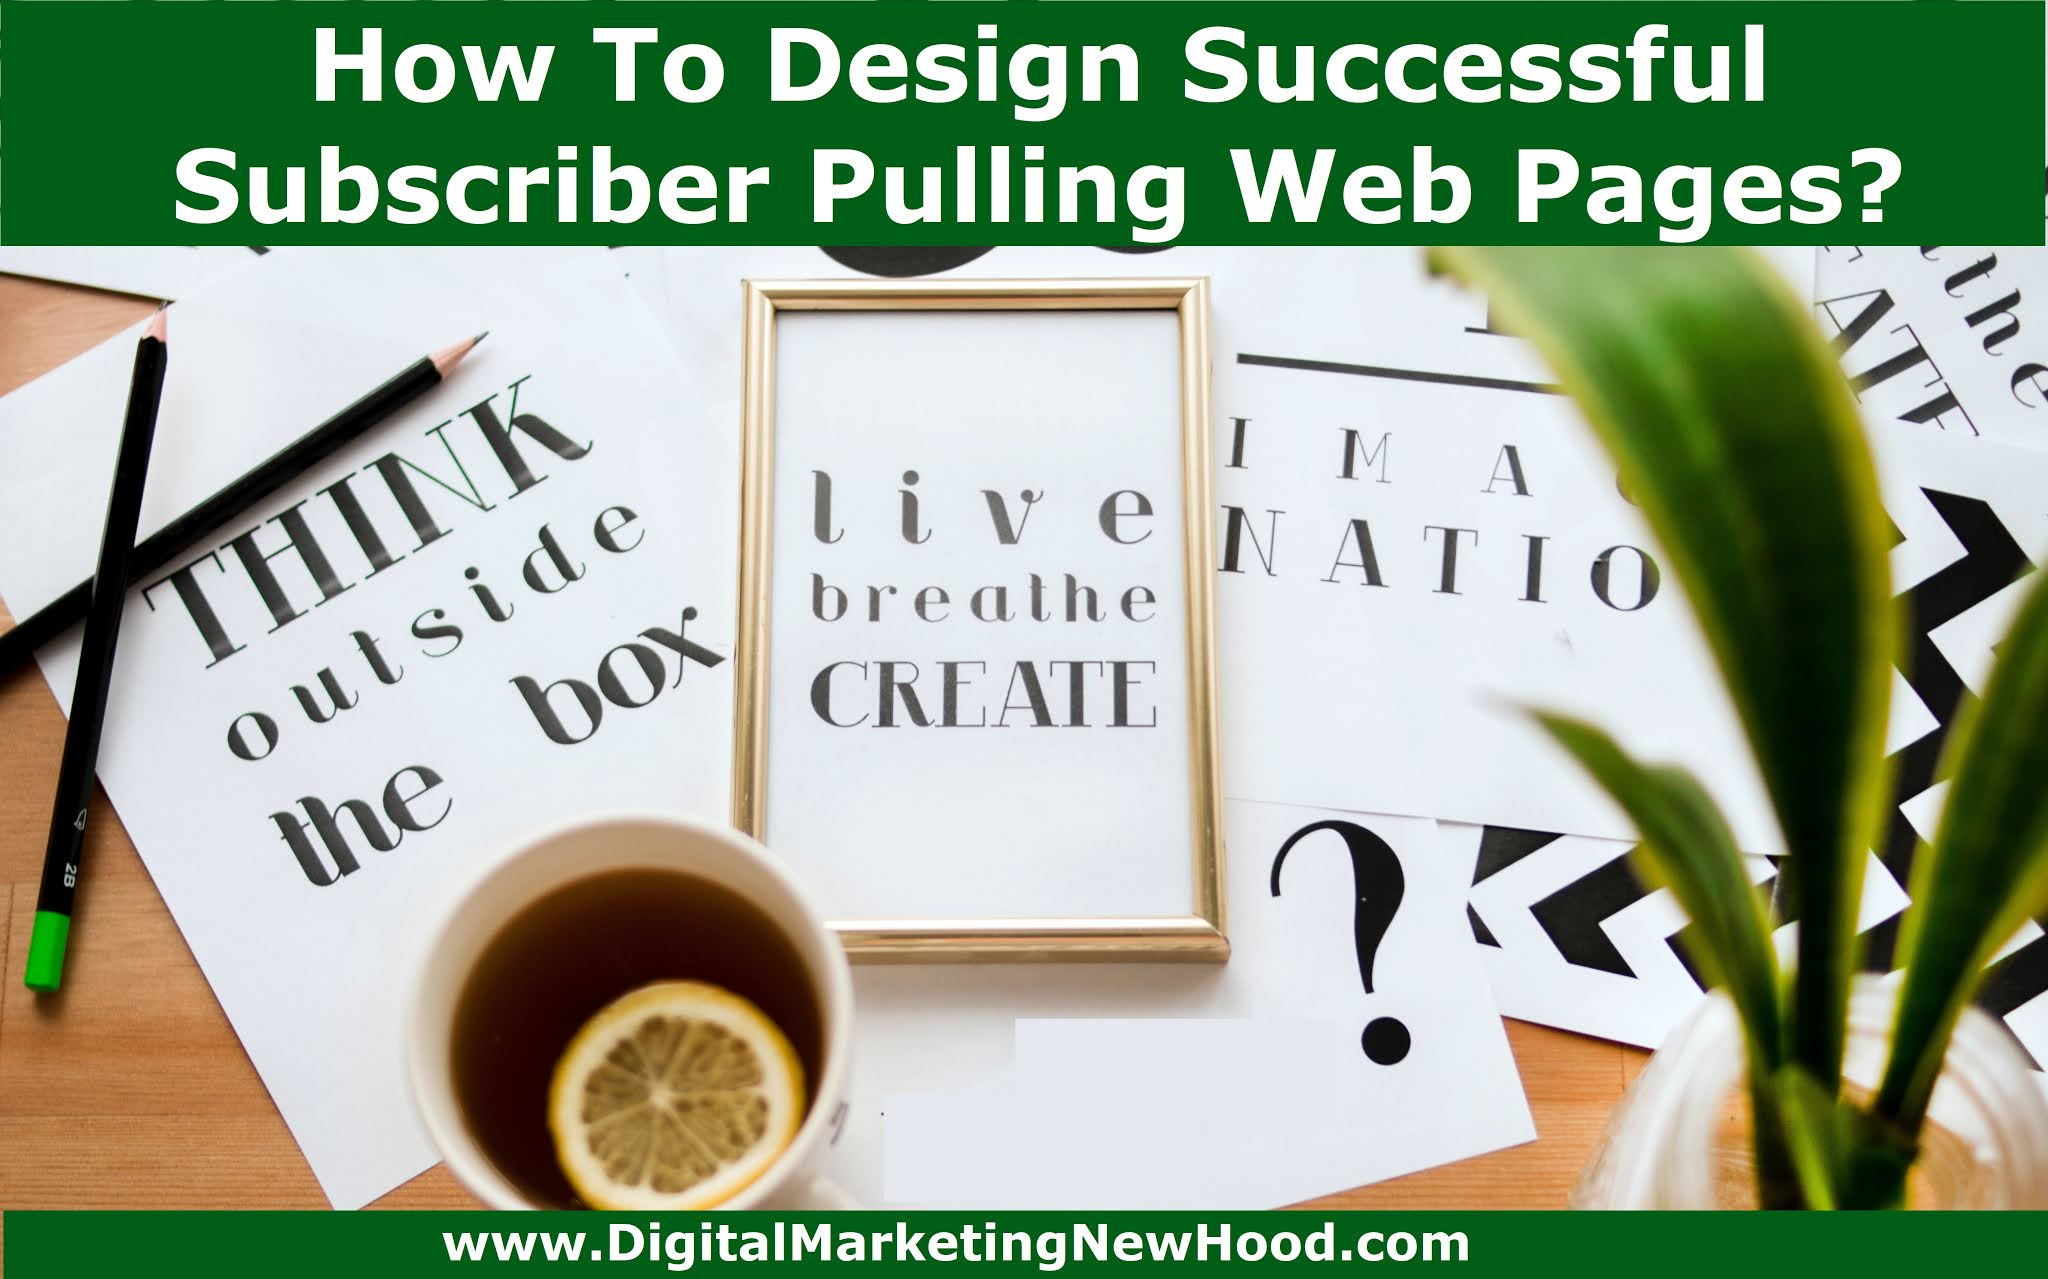 How To Design Successful Subscriber Pulling Web Pages?